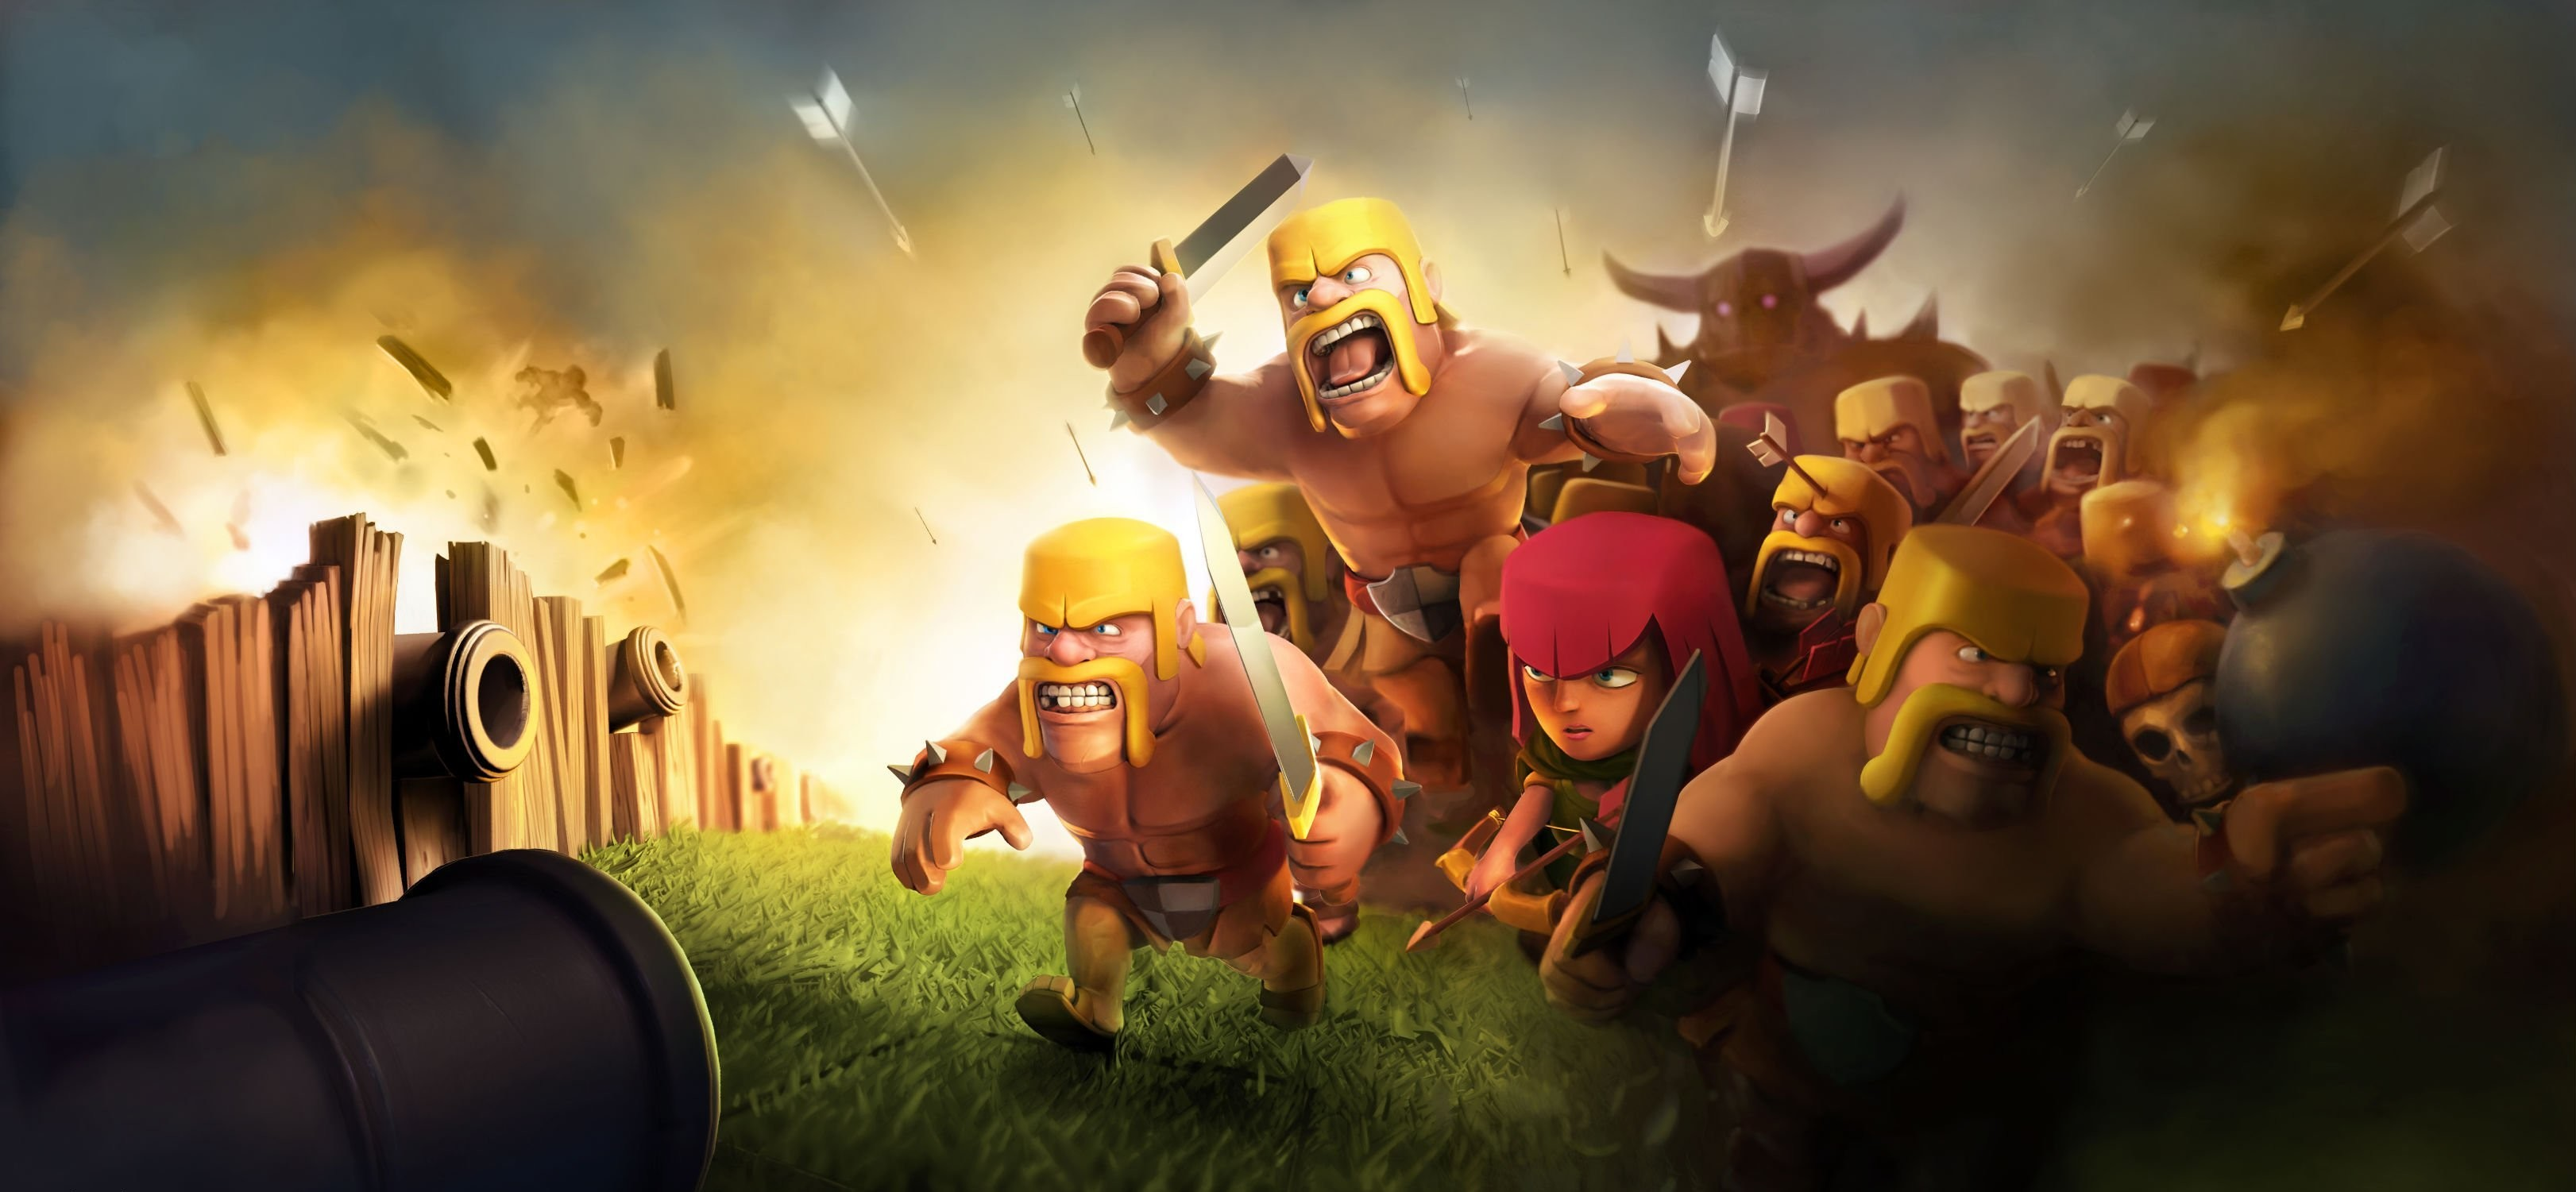 Clash Of Clans HD 2048×1152 Resolution